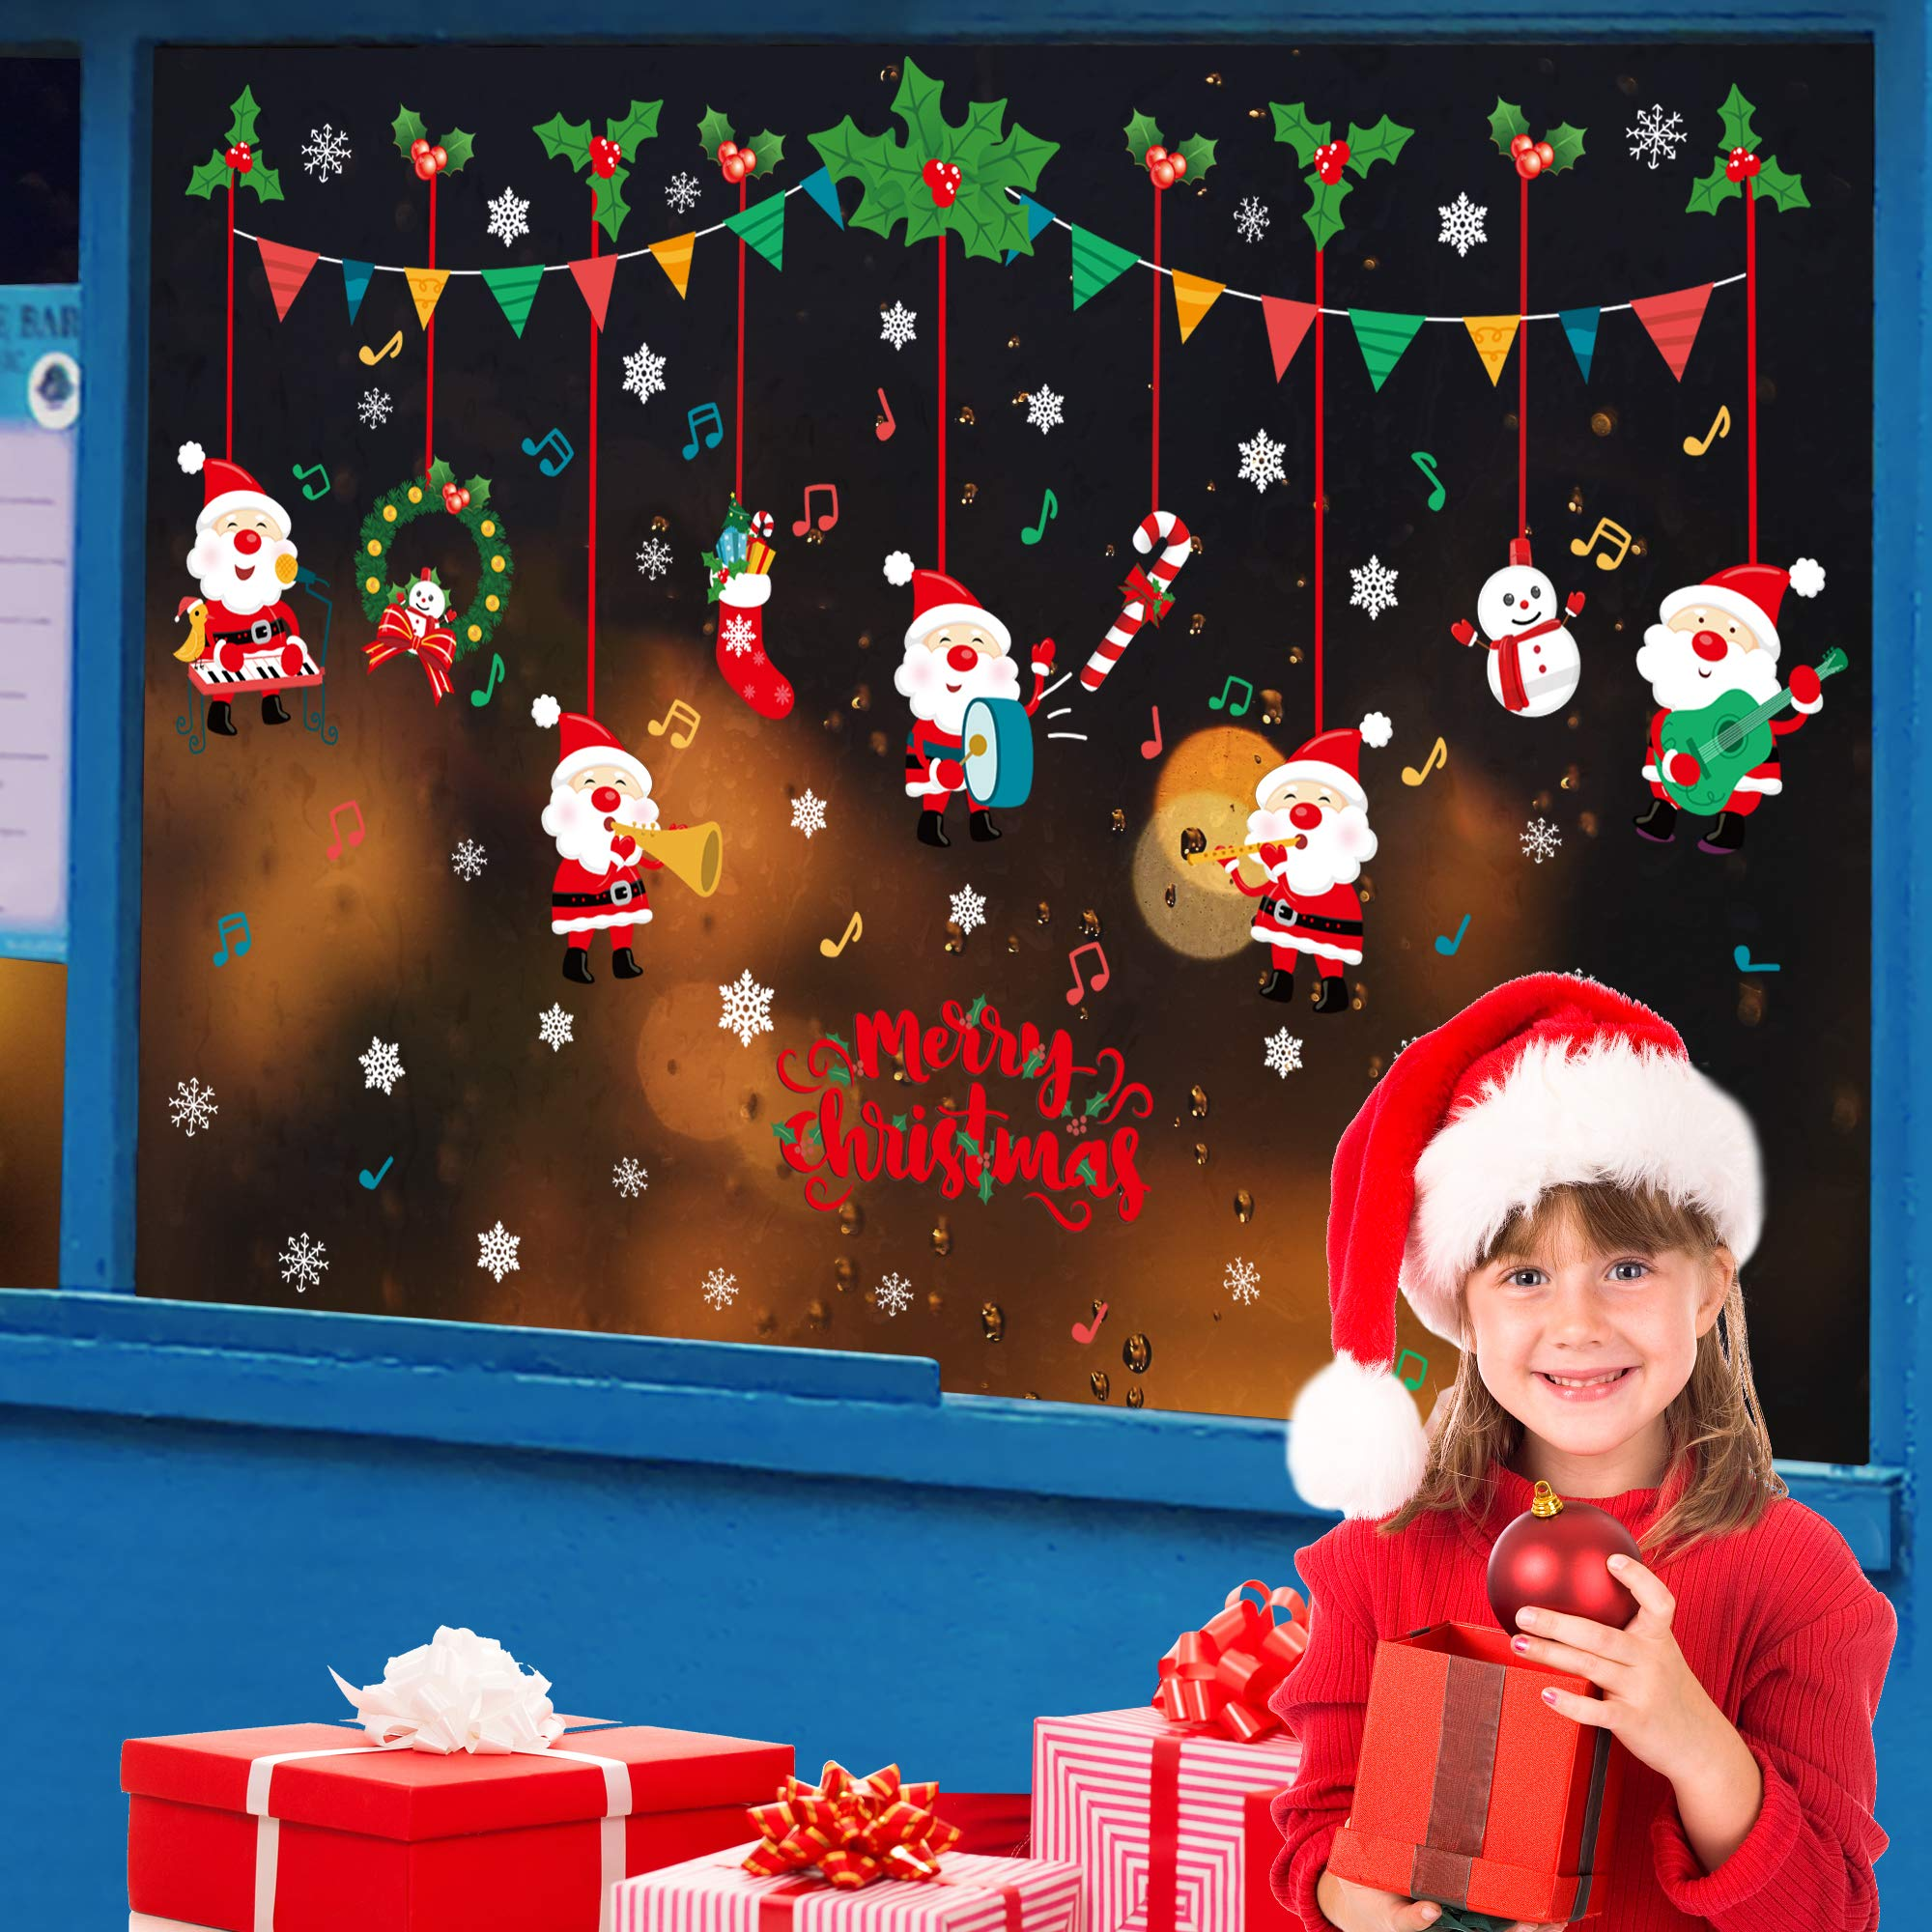 Christmas Decorations Clearance Christmas Window Clings Decal Stickers Party Snowflake Decorations,DIY Stickers Festival Suppliers!